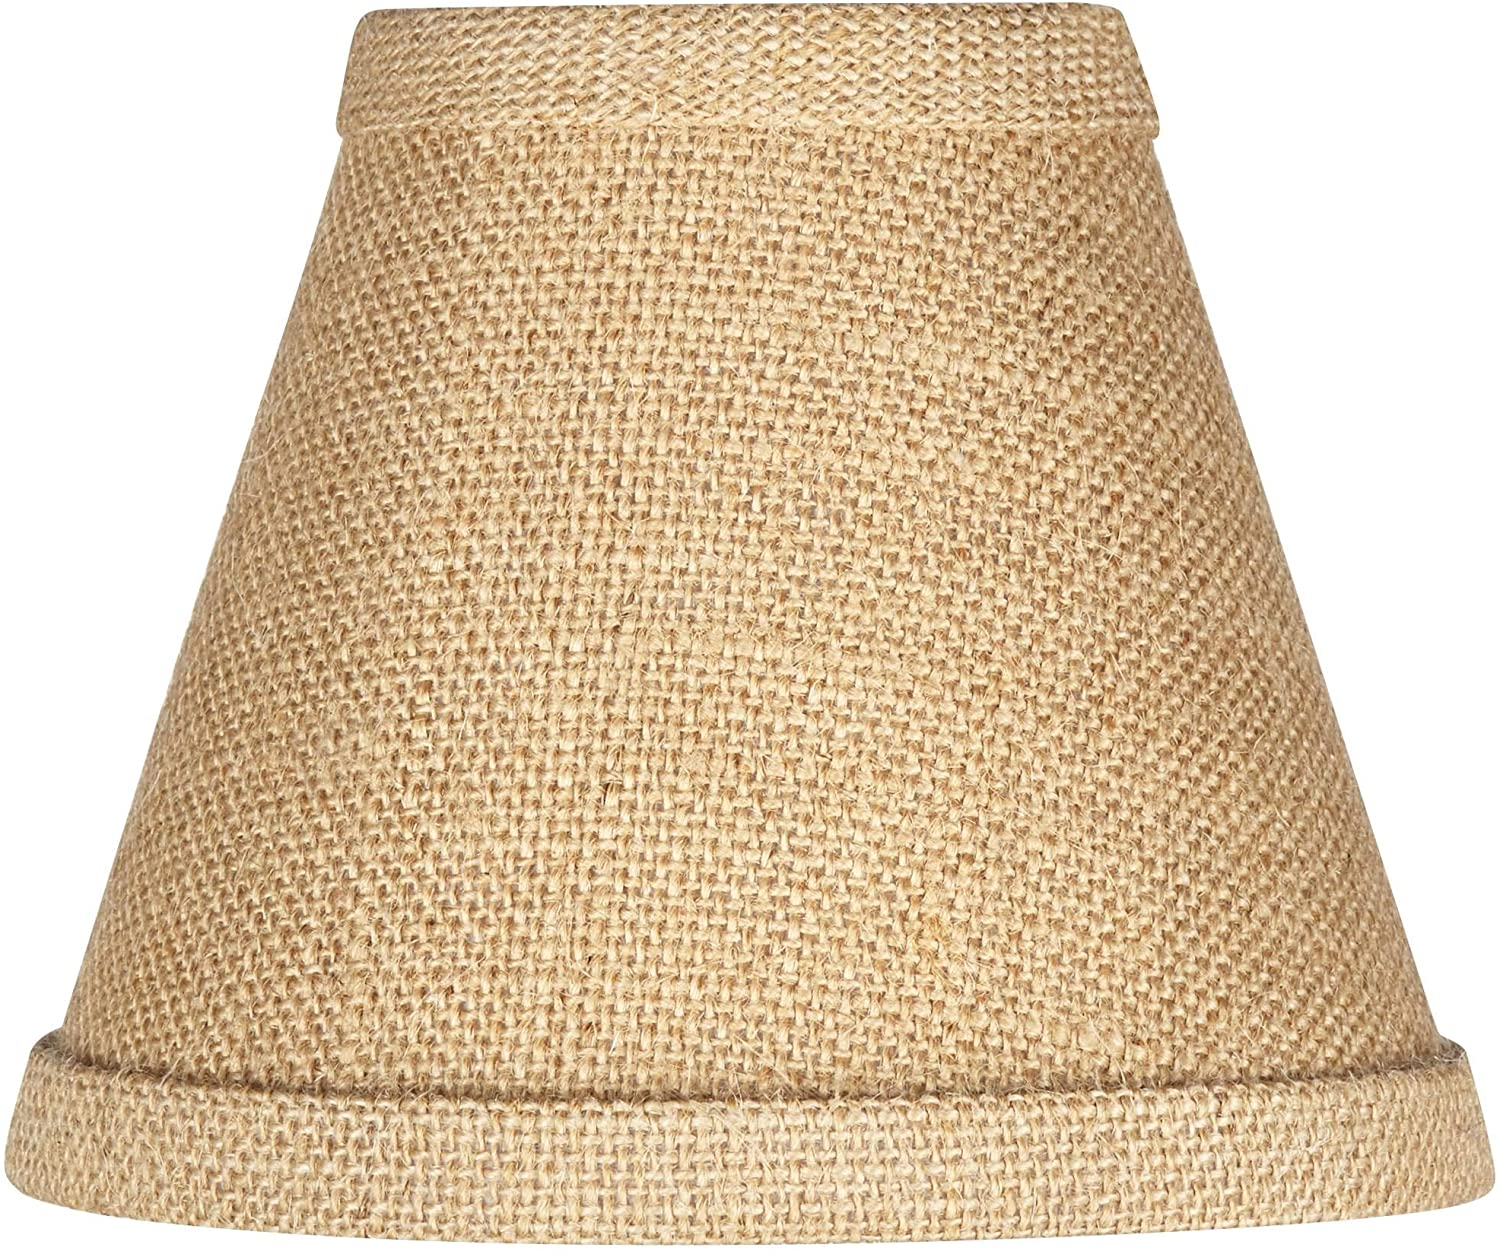 Woven Burlap Set of Four Shades 3x6x4 3/4 (Clip-On) - Brentwood